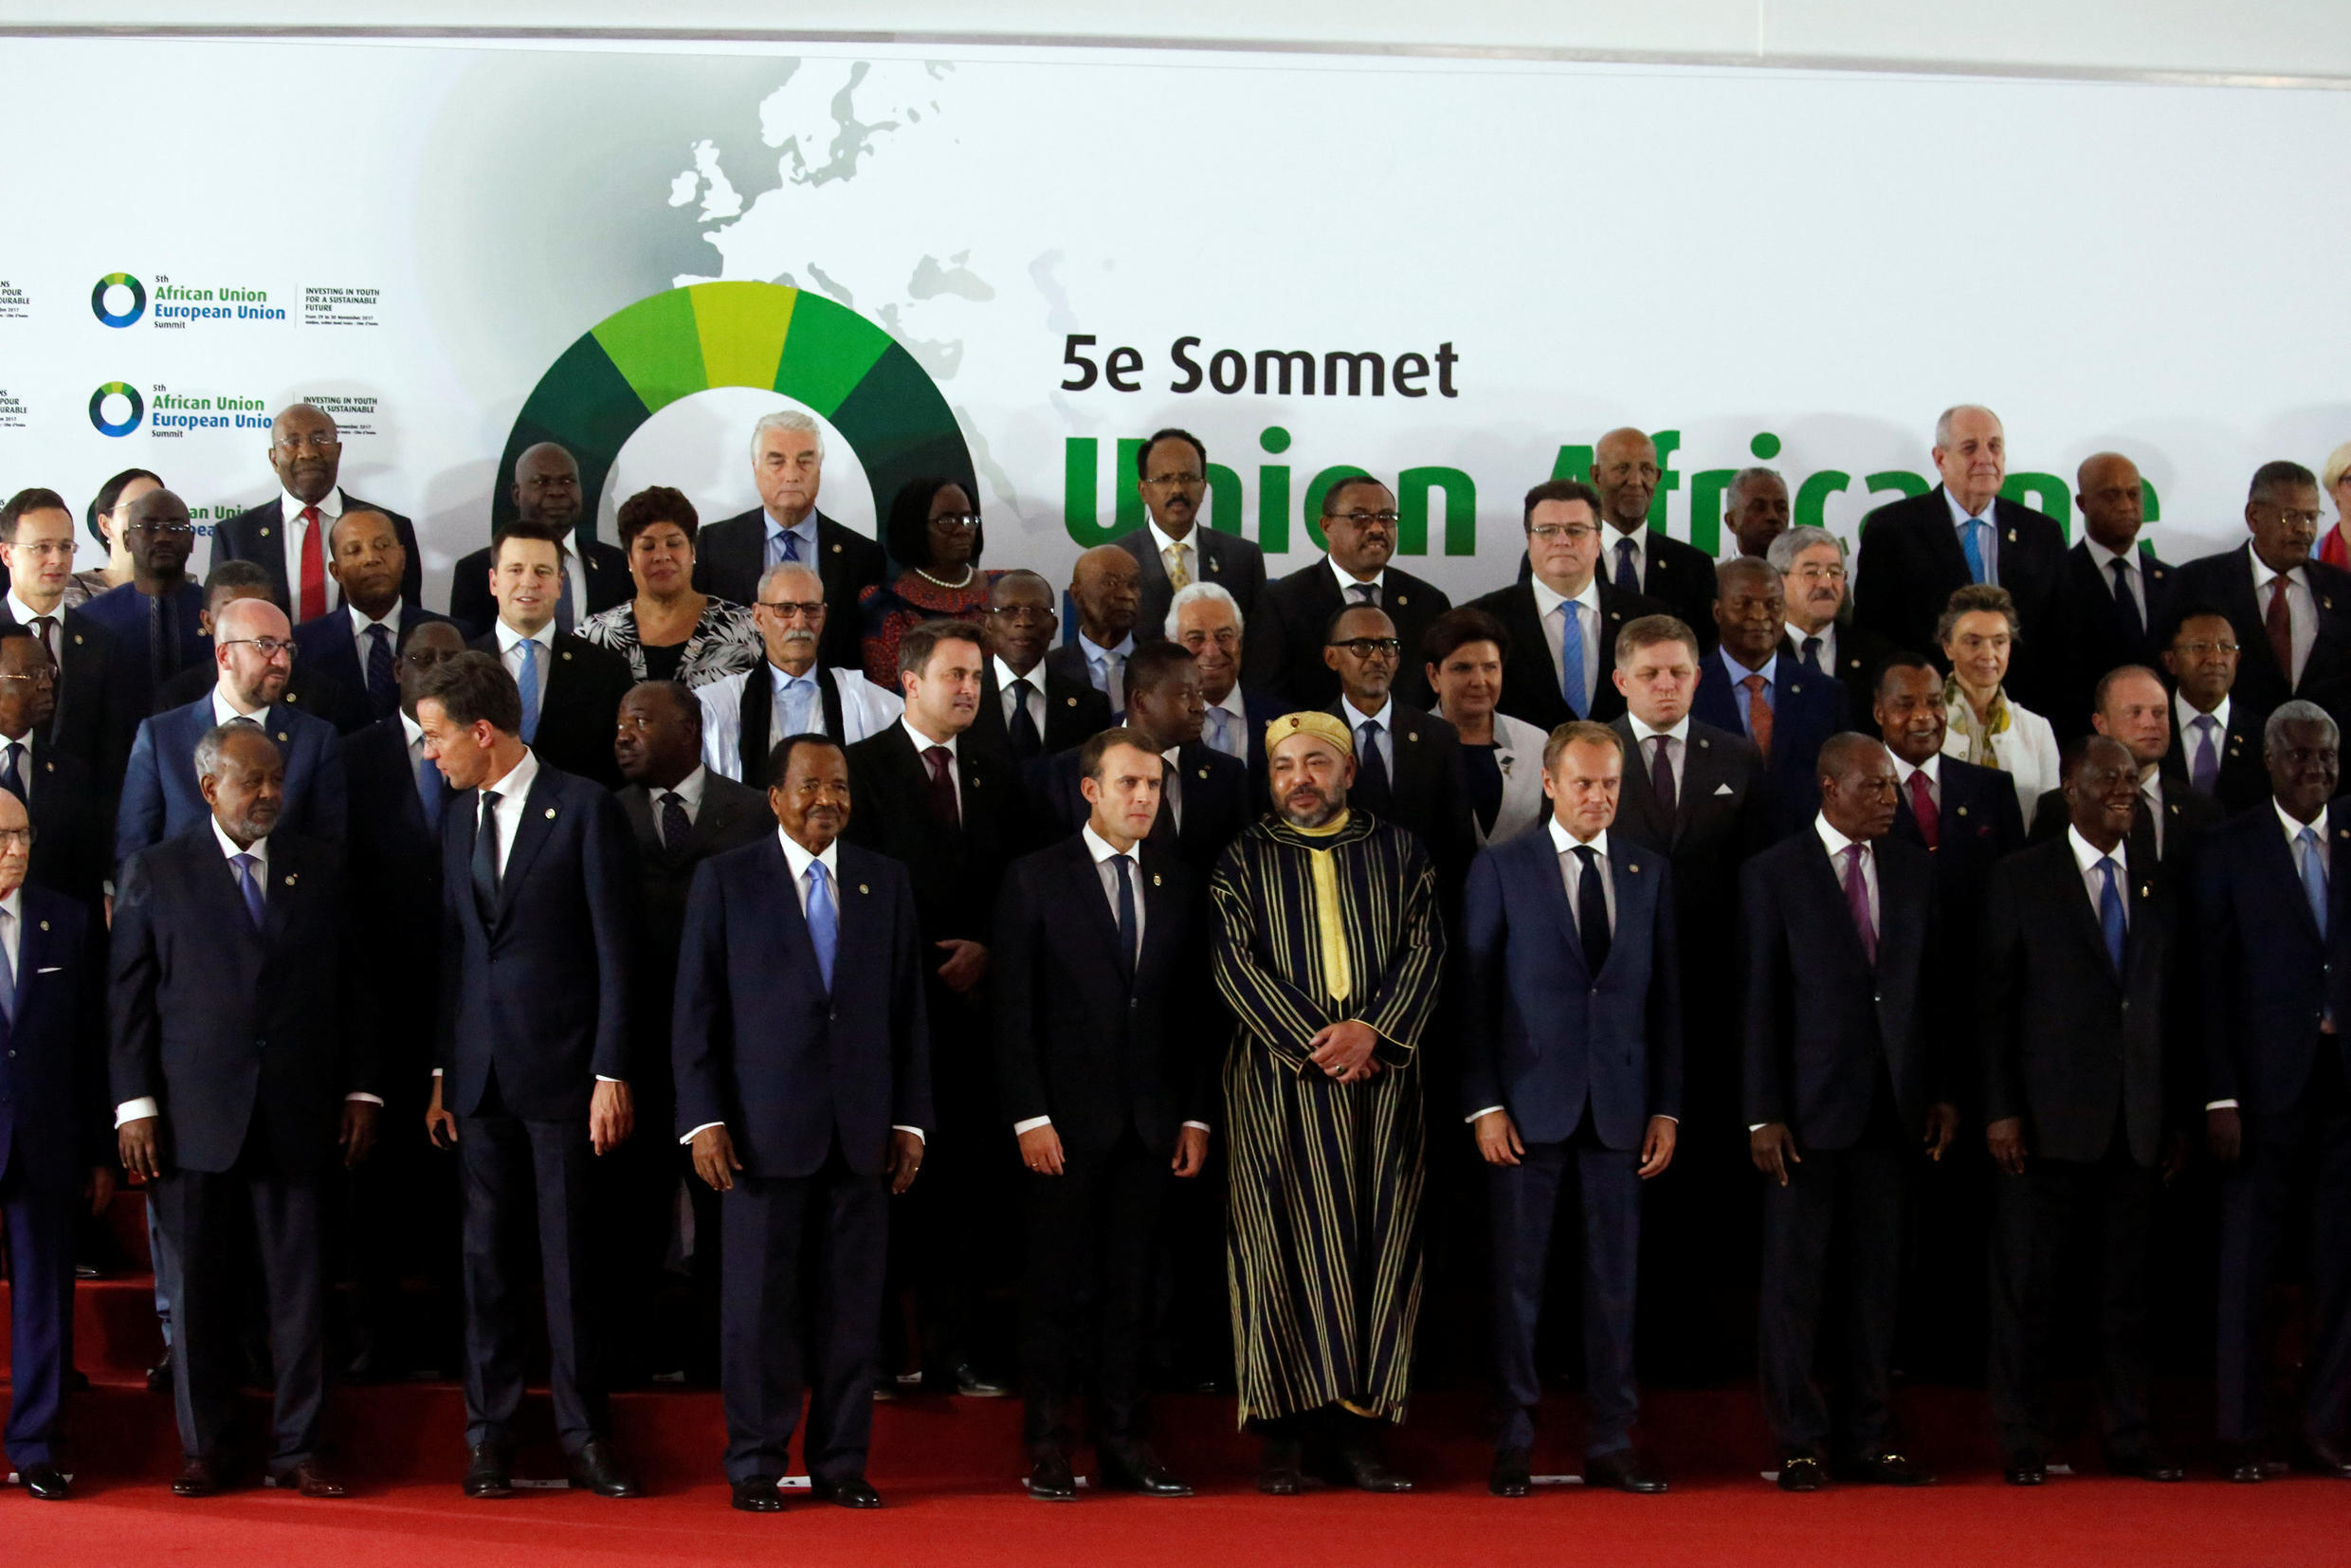 European Union and African Union heads of states pose during the opening ceremony of the fifth AU-EU summit in Abidjan, Côte d'Ivoire on 29 November, 2017.